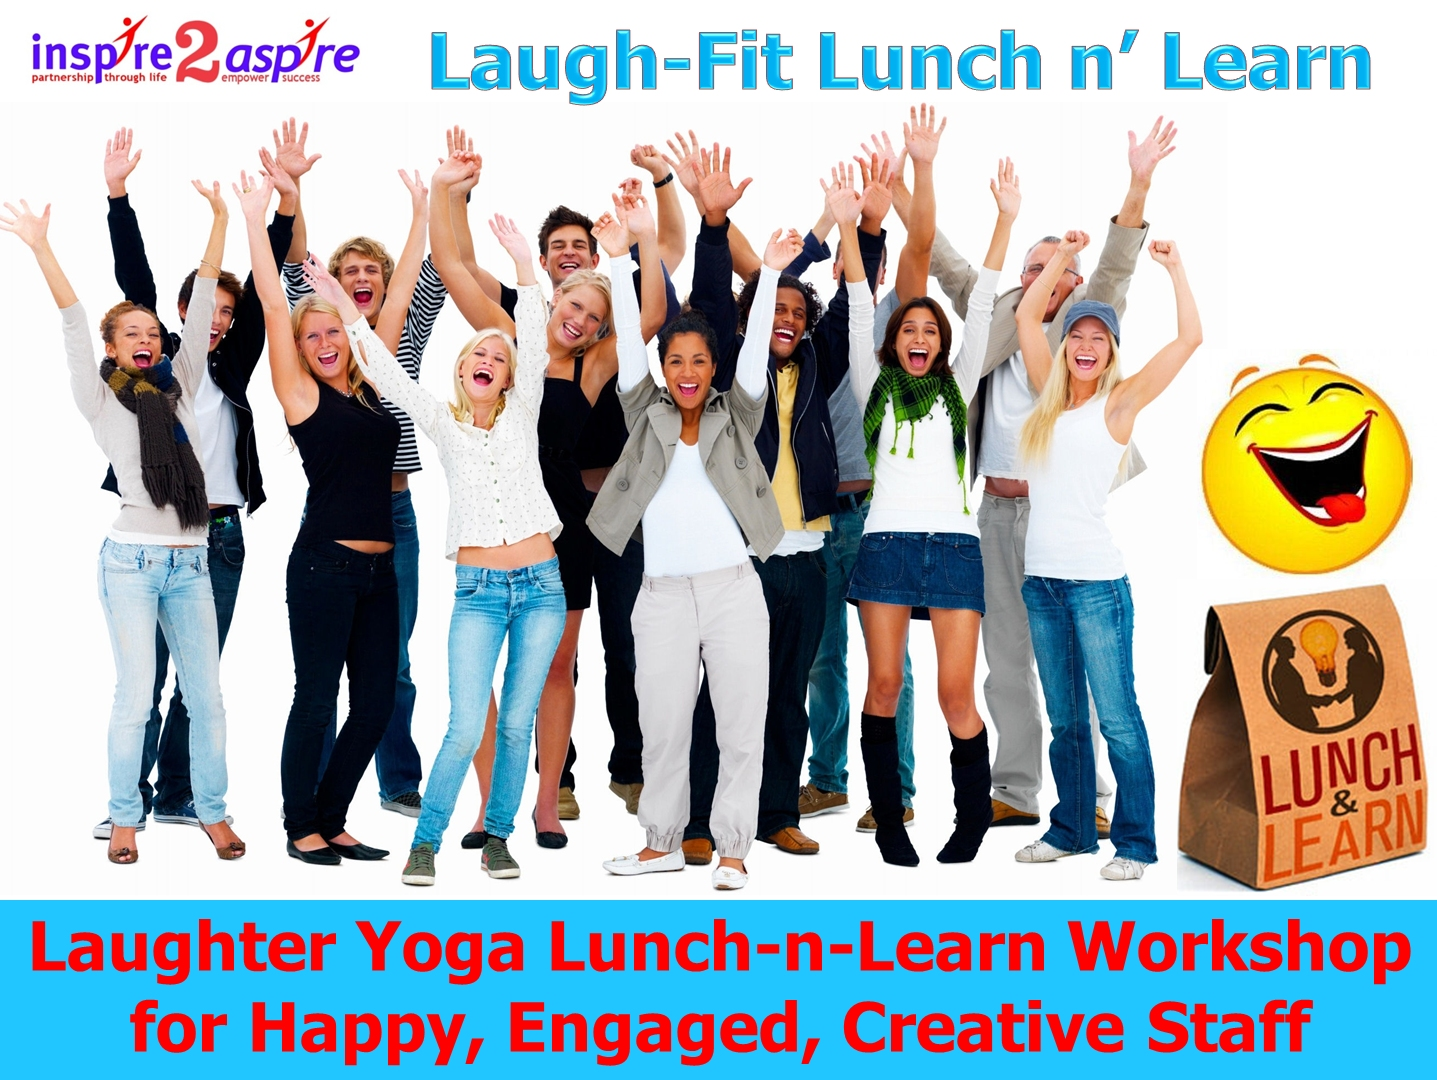 laugh-fit-lunch-n-learn-workshop-happy-engaged-creative-staff